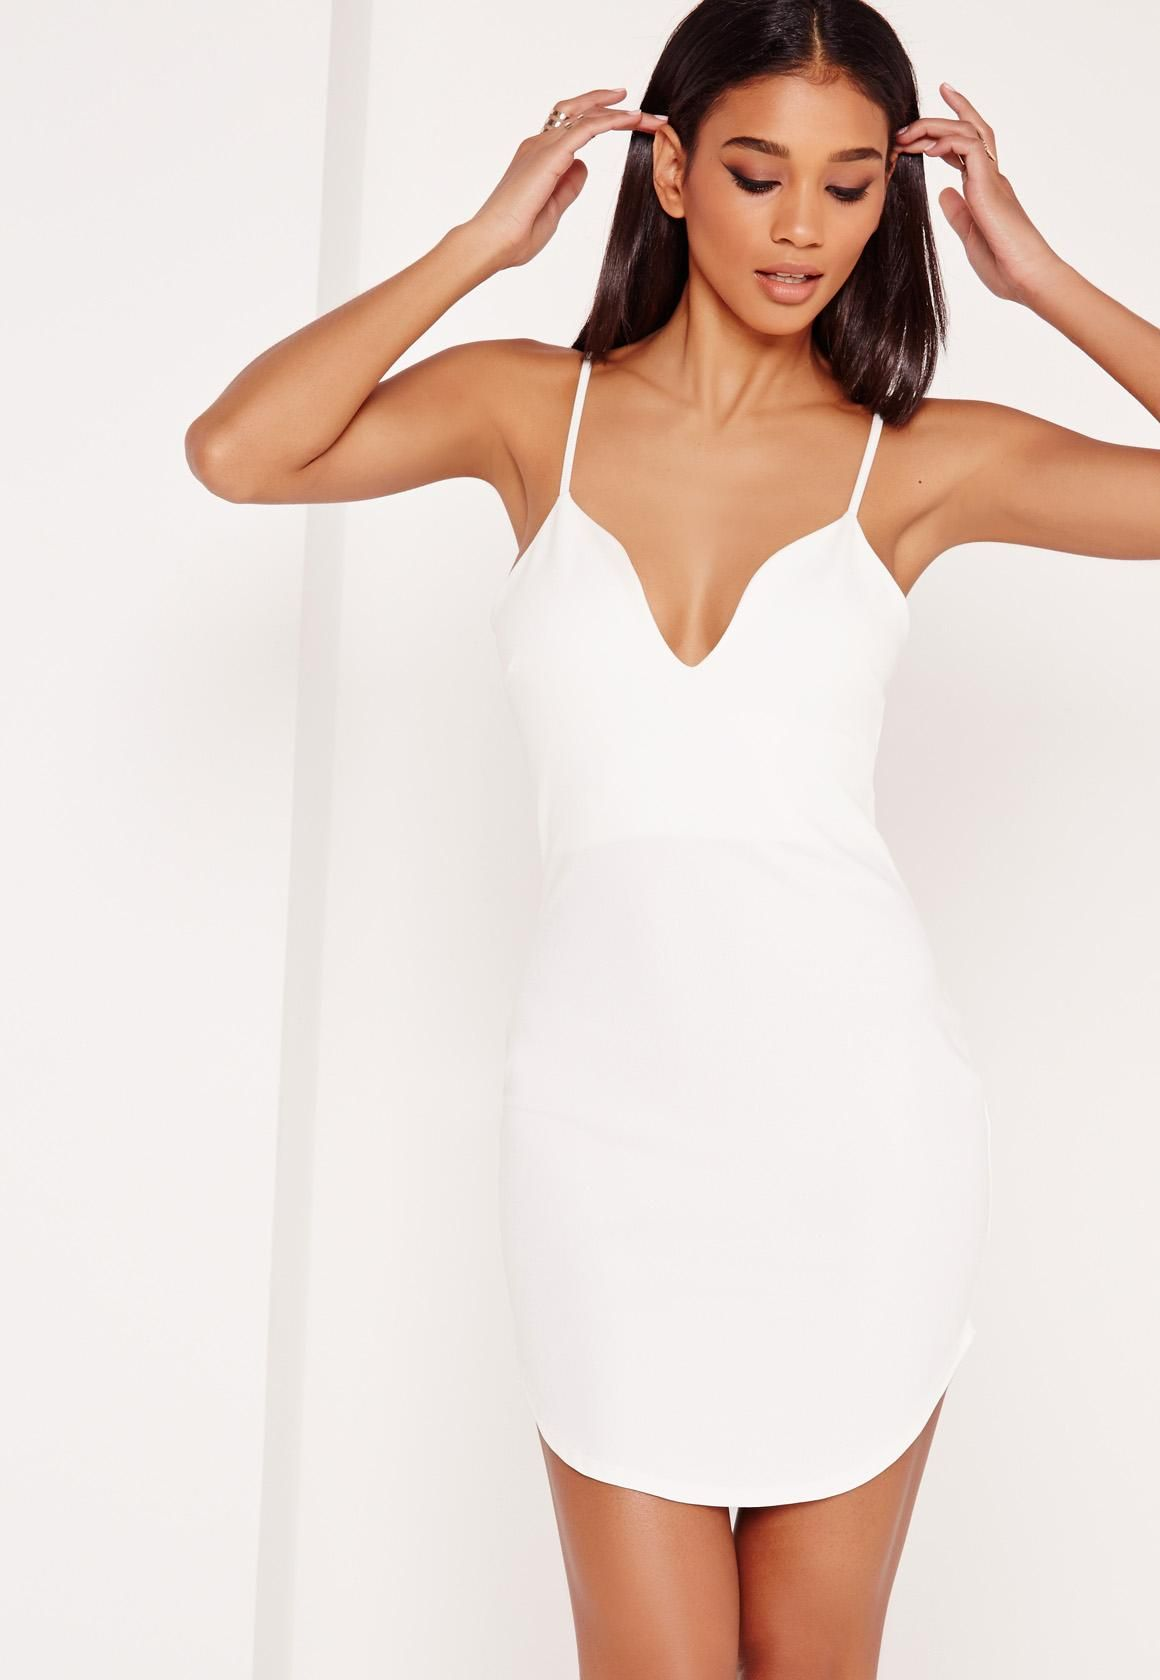 Missguided Strappy Plunge Bodycon Dress White Bodycon Dress Plunge Bodycon Dress White Bodycon Dress